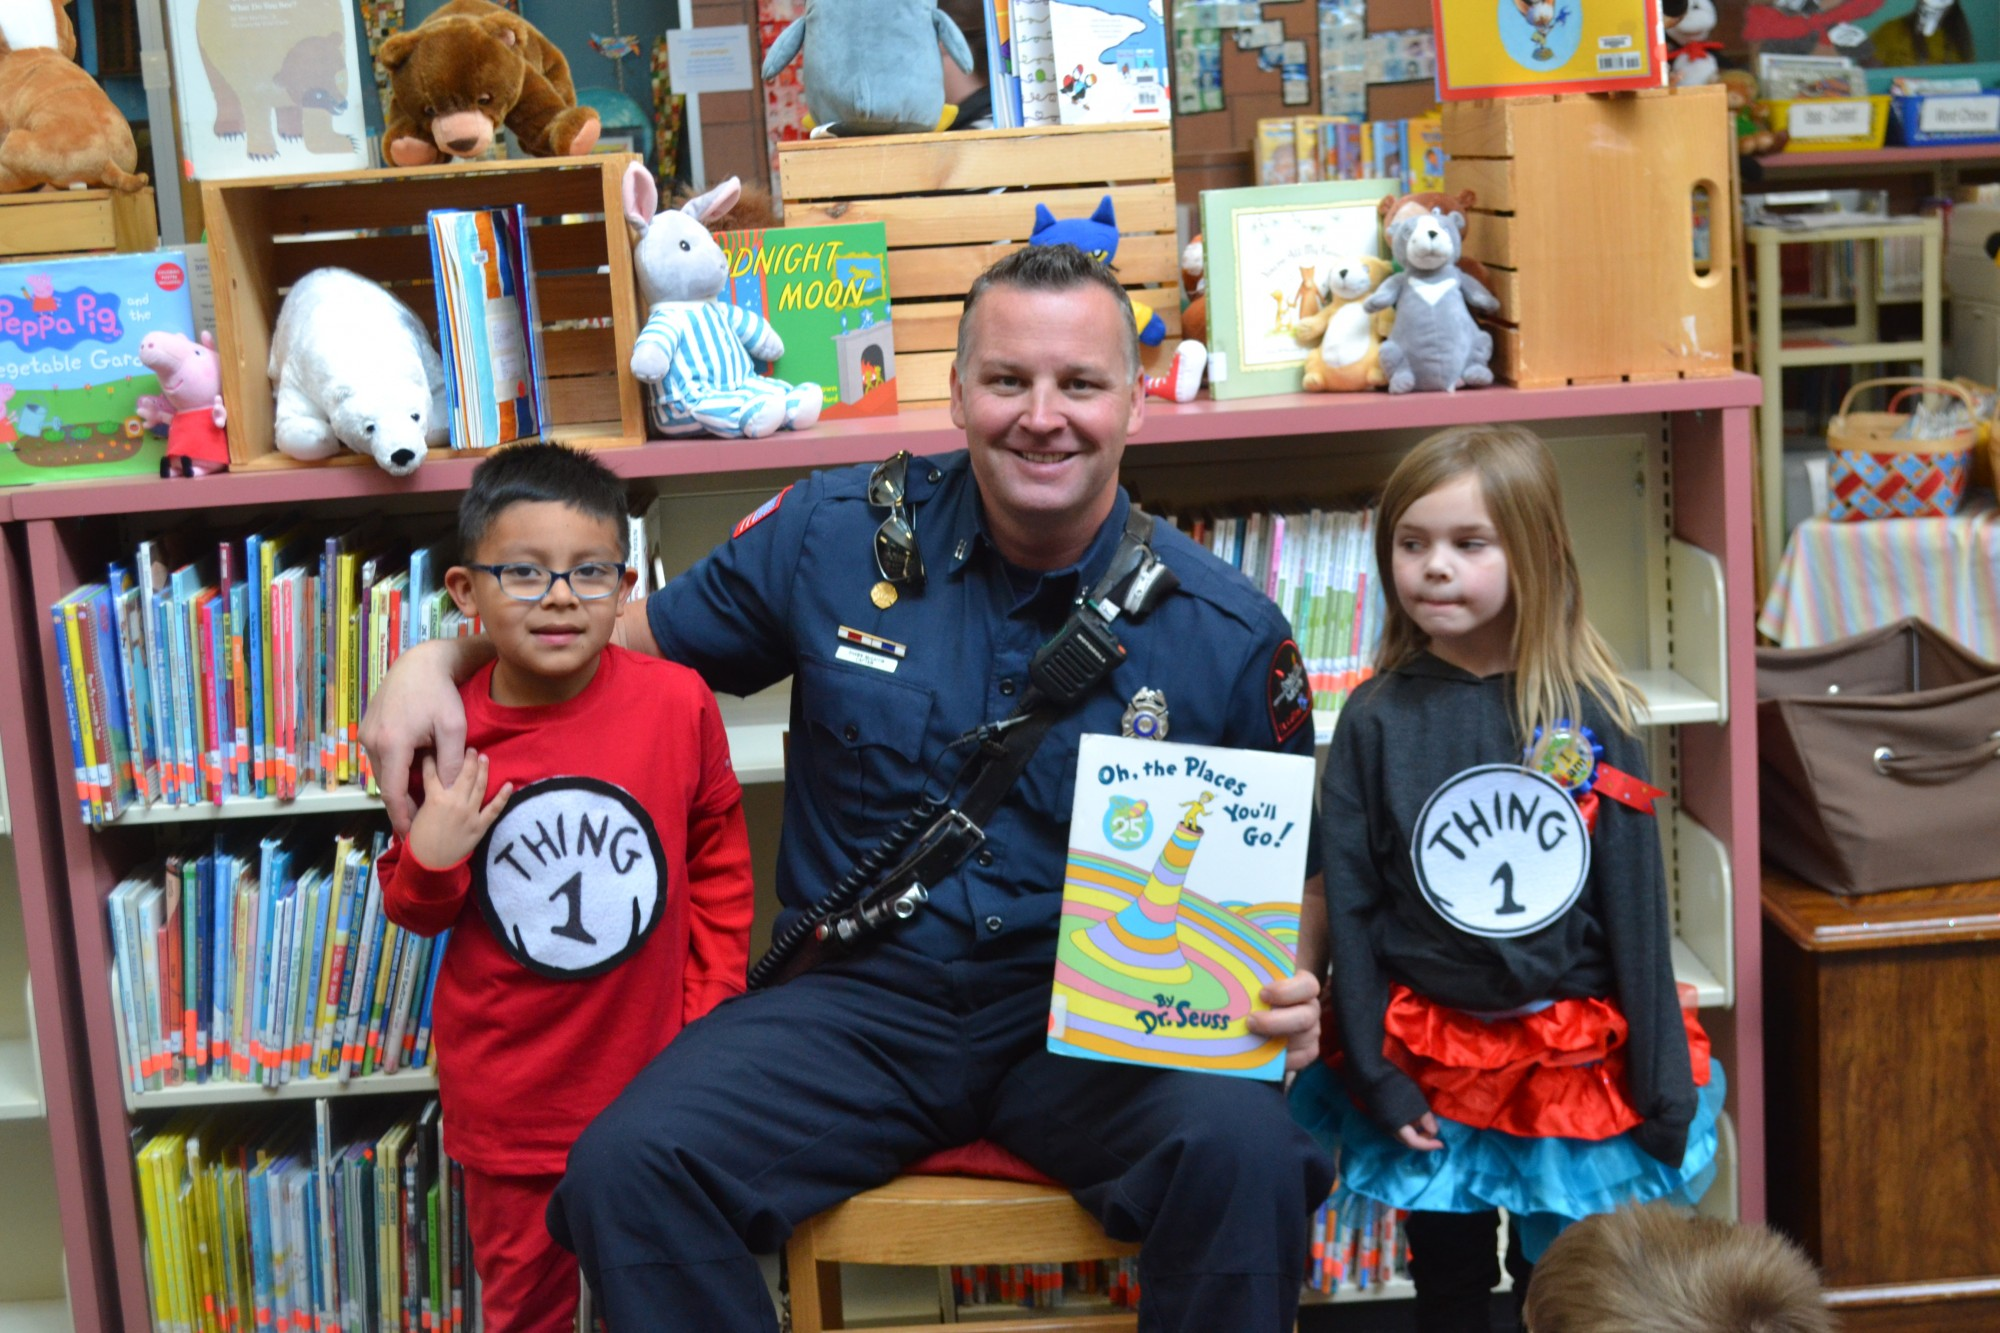 A firefighter reads to a group young students.